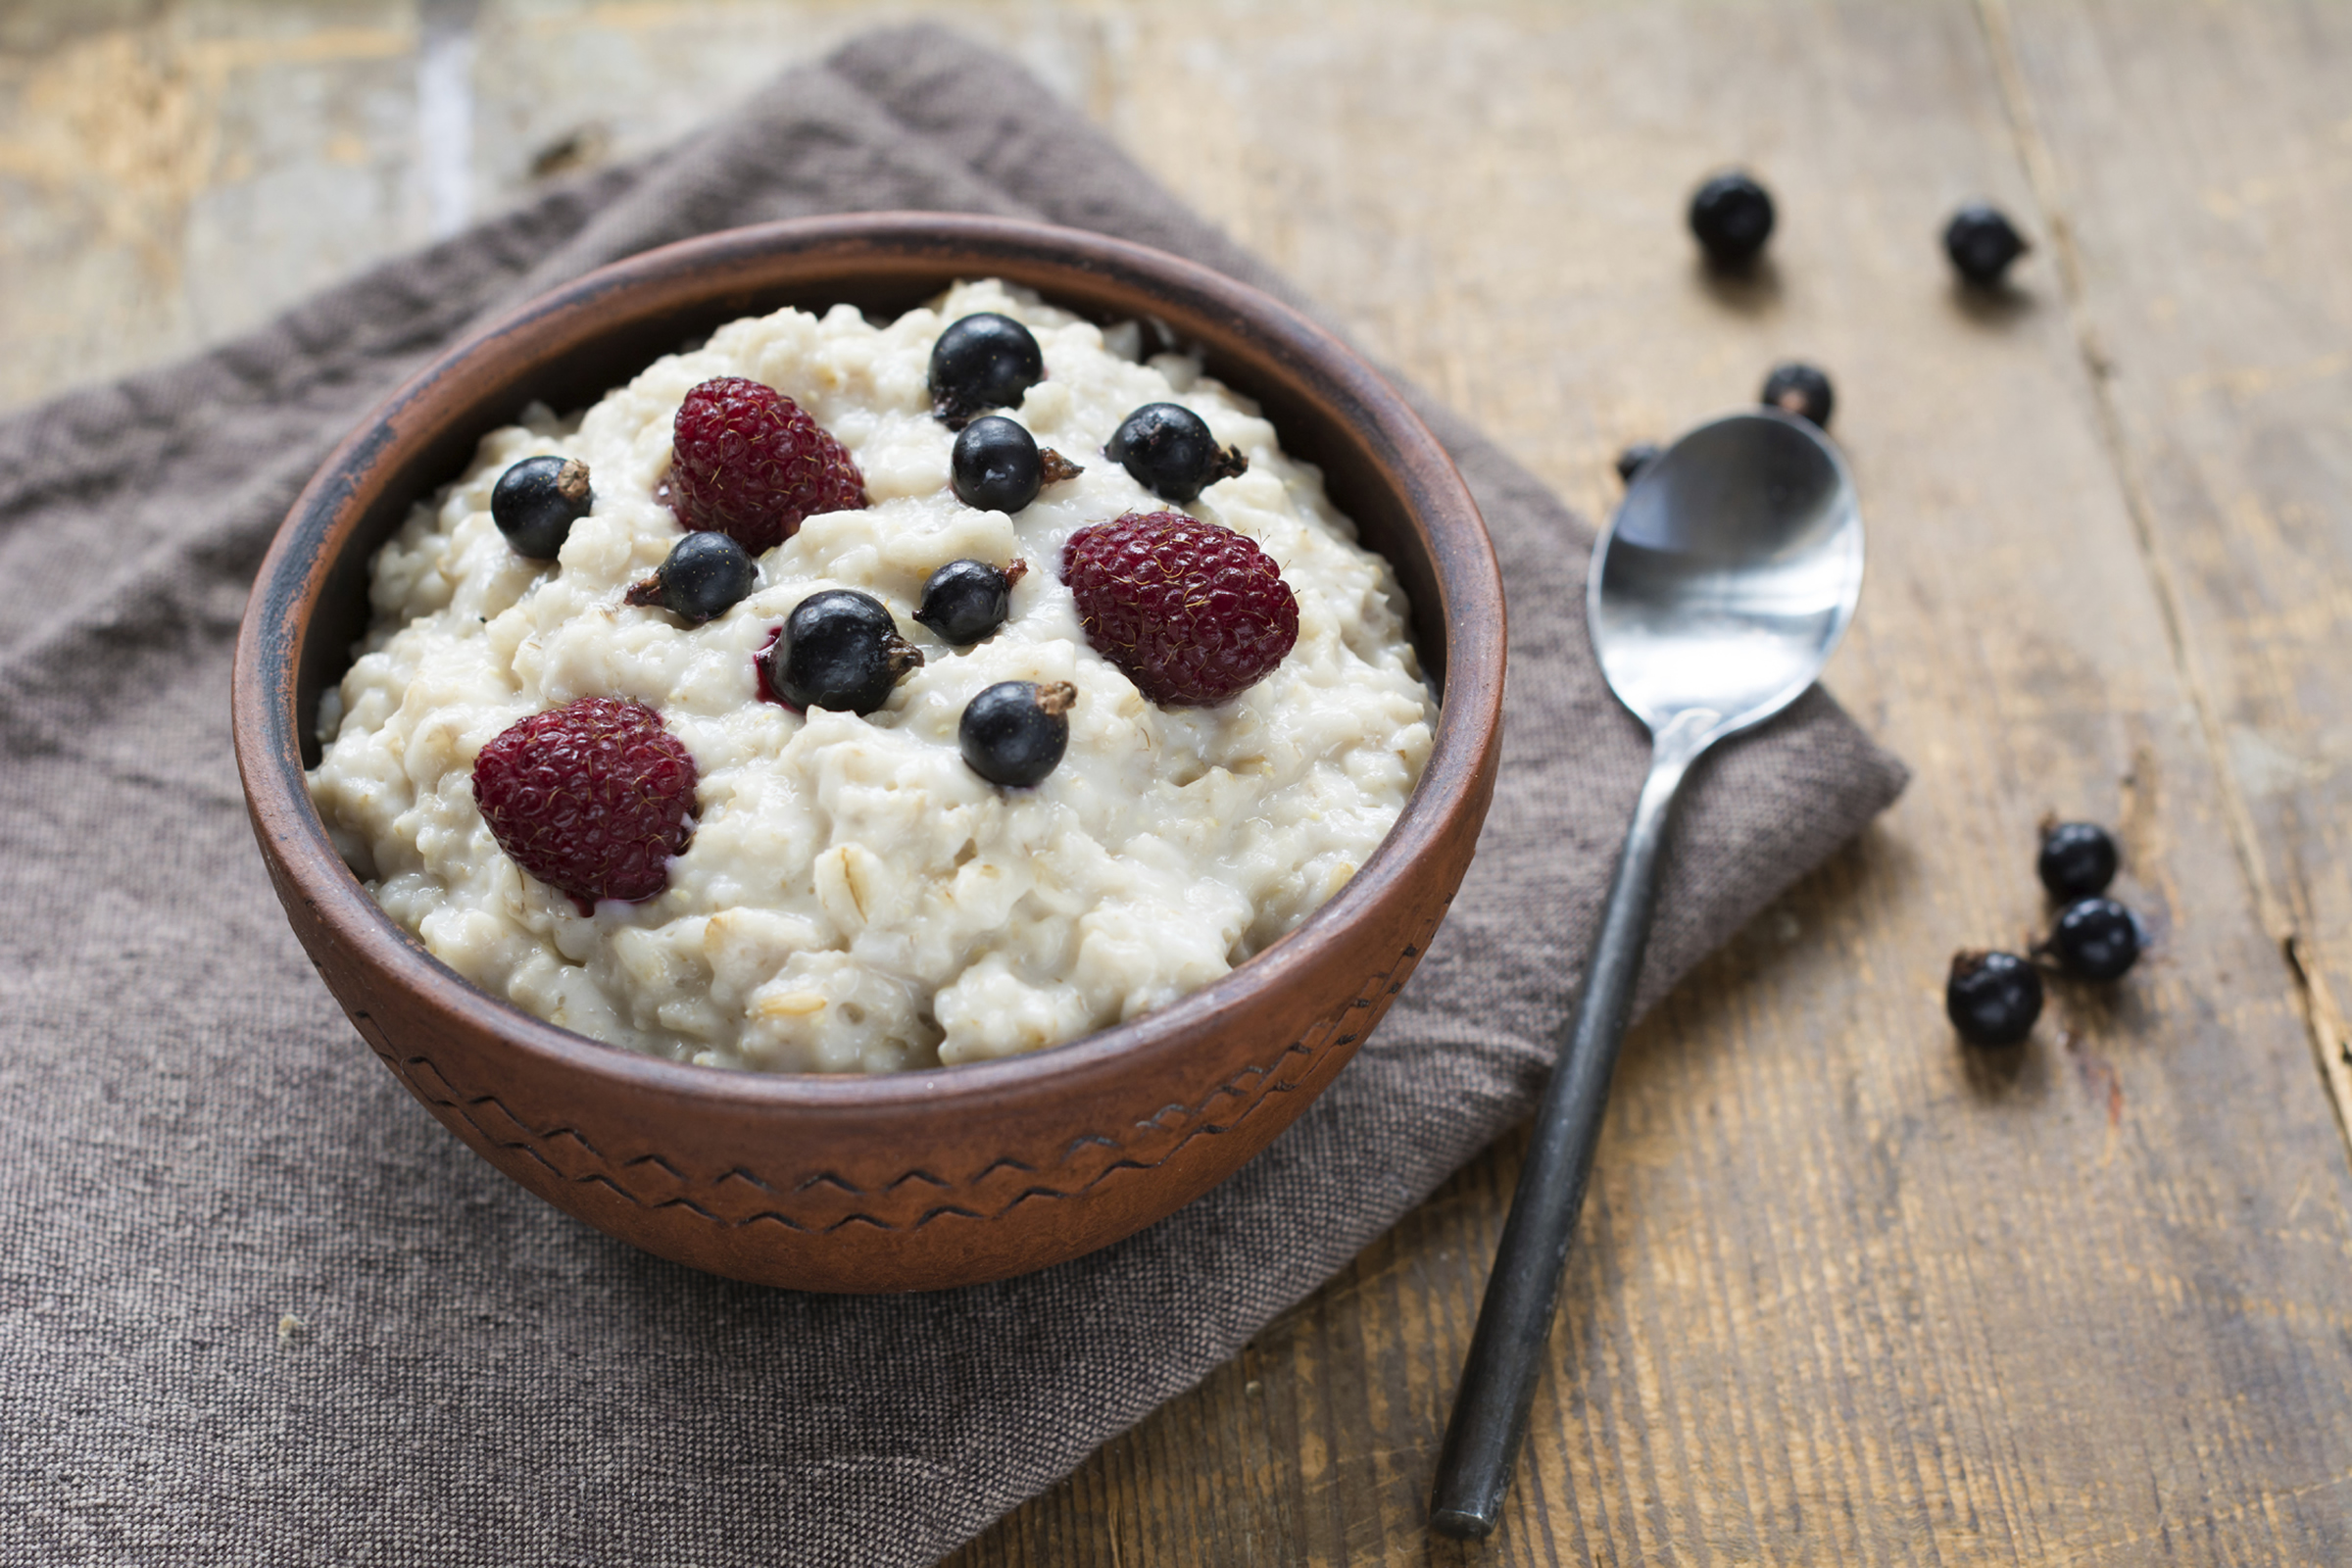 Bowl of Porridge Oats with Dried Fruit